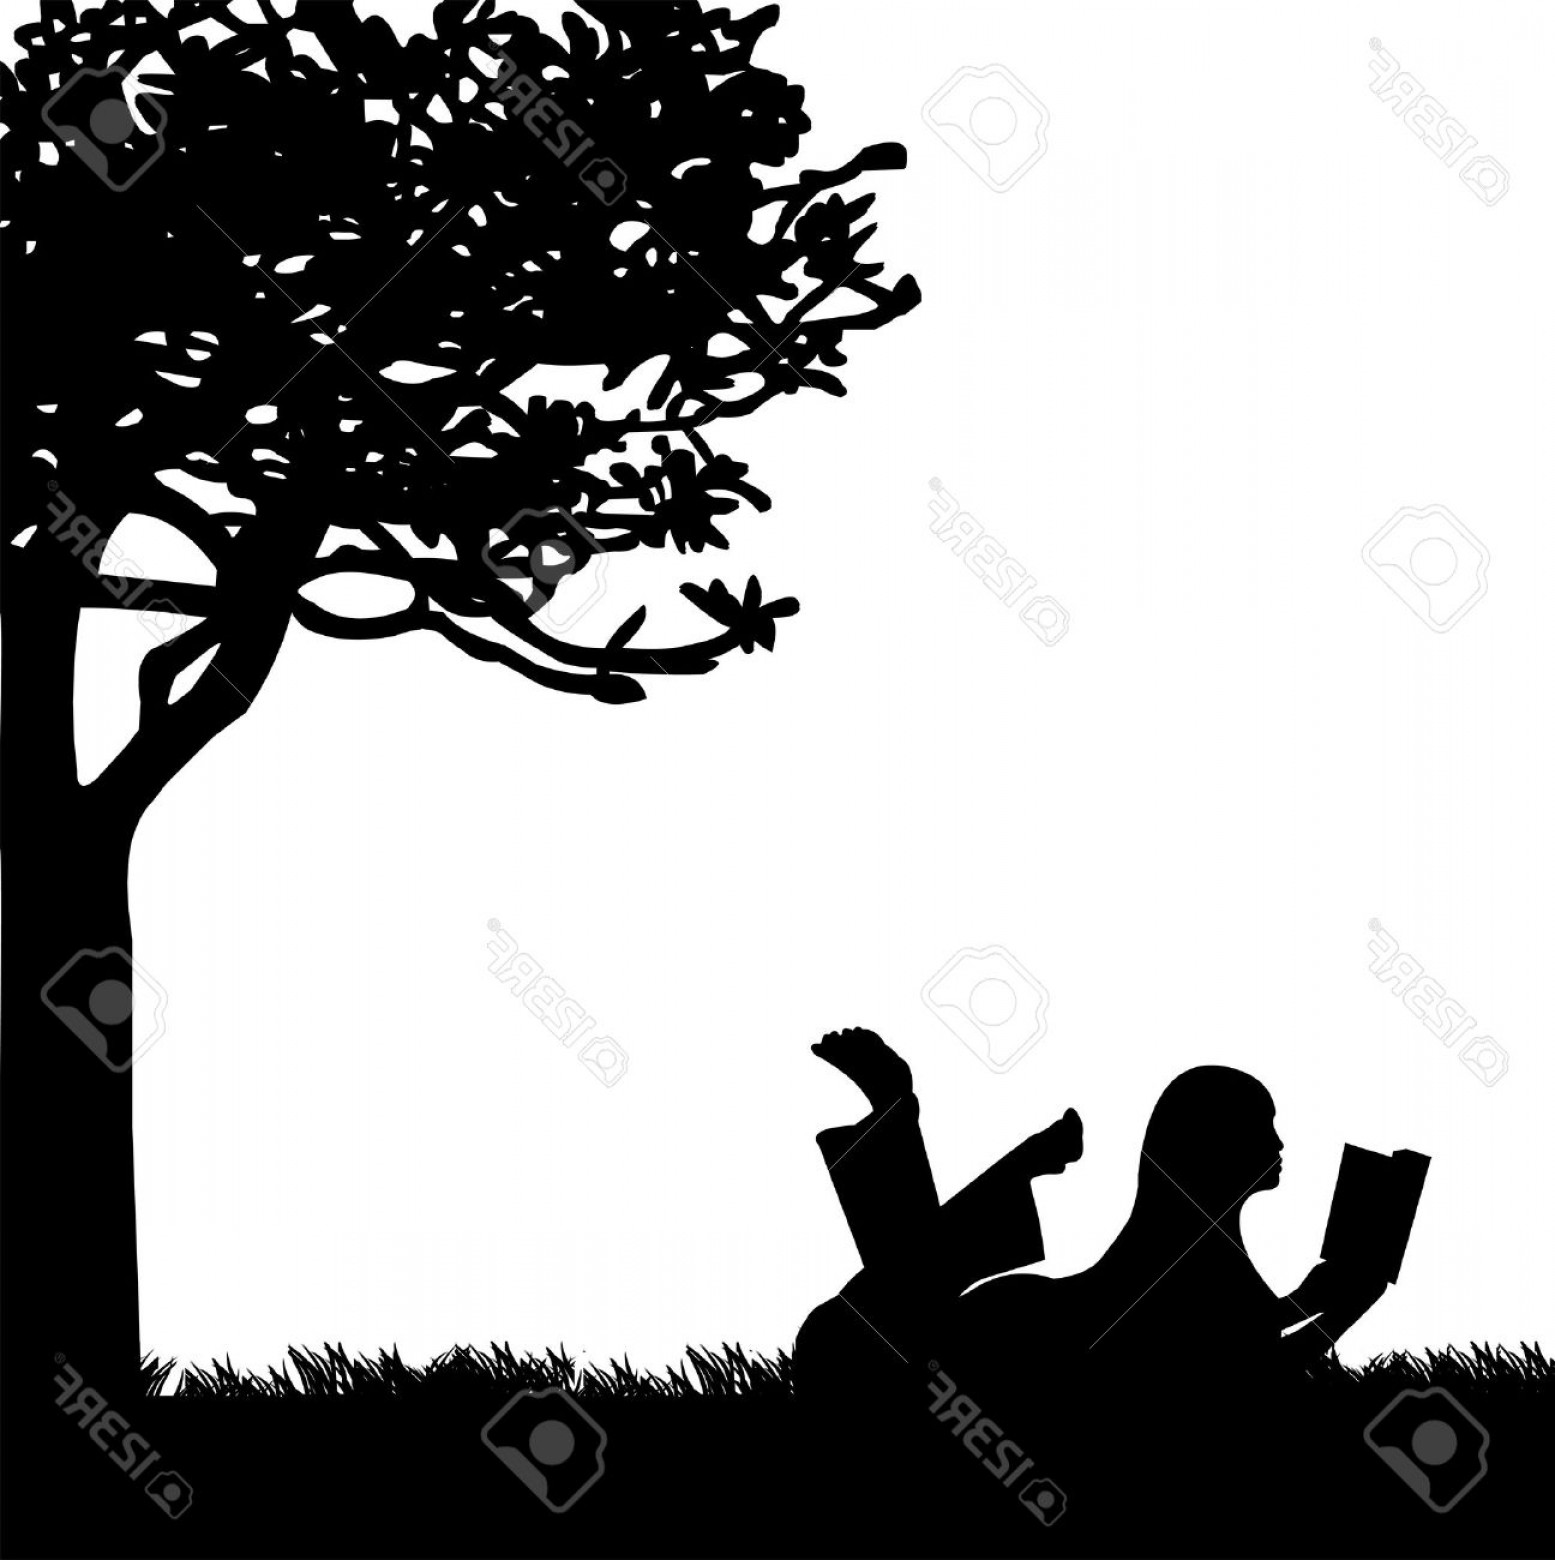 Spring Vector Silhouette: Photosilhouette Of Girl Reading A Book Under The Tree In Spring One In The Series Of Similar Images